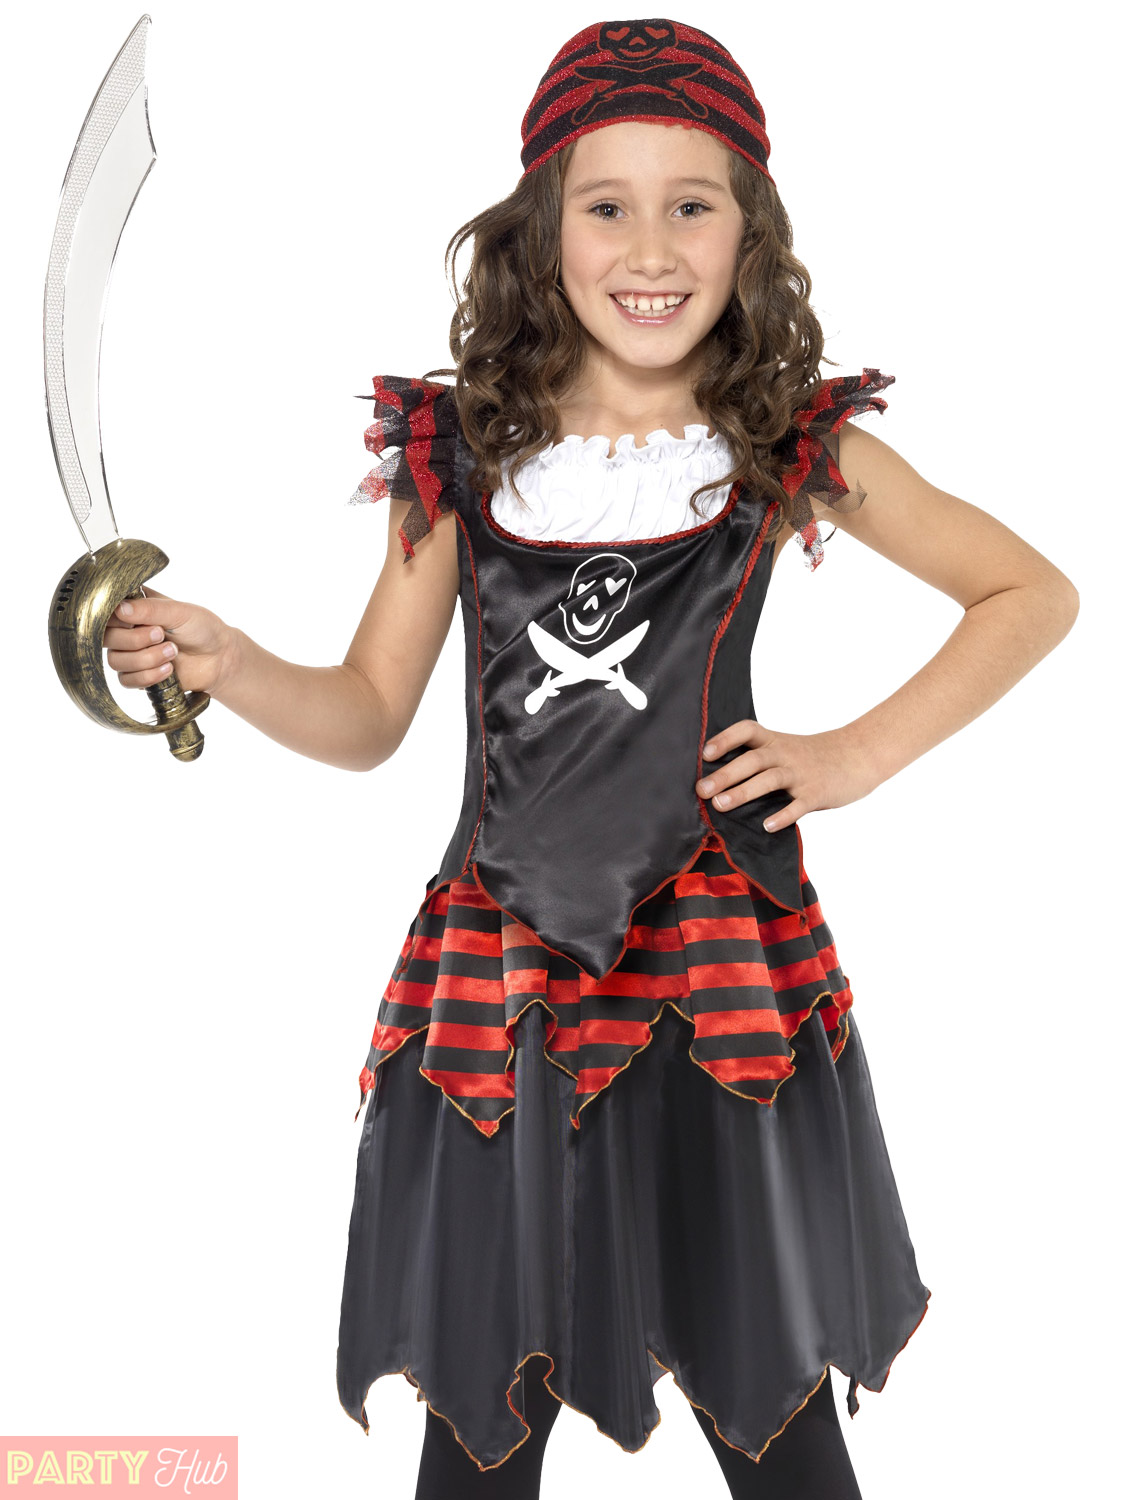 ... Picture 2 of 4 ...  sc 1 st  eBay & Pirate Skull and Crossbones Girls Fancy Dress Costume Kids Pirates ...